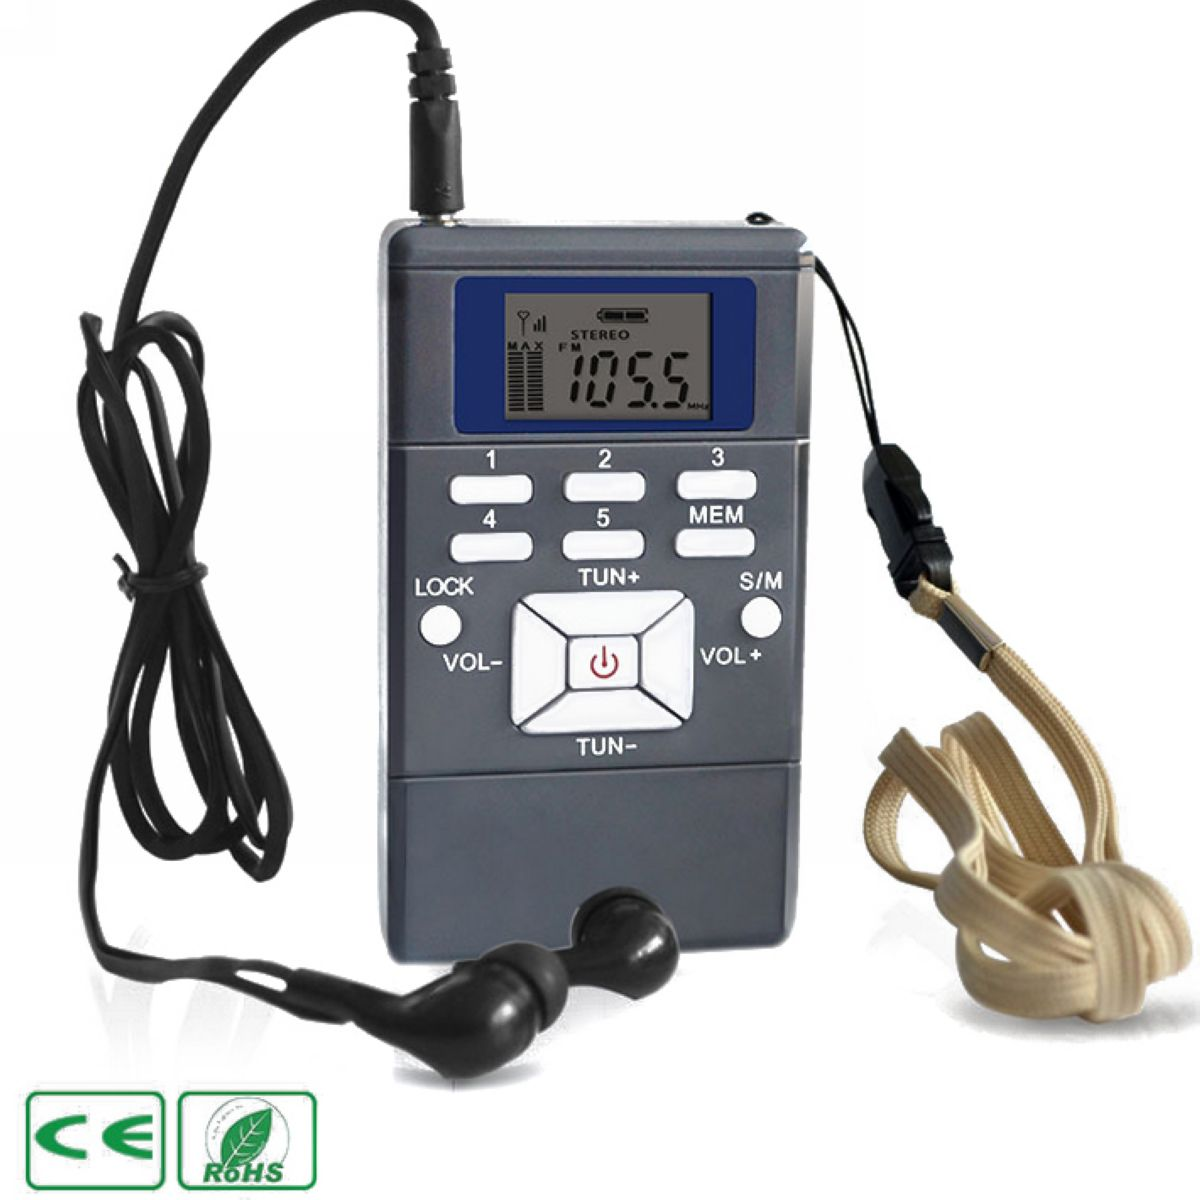 Mayitr 1Pc Portable FM radio Receiver 60-108MHz Handheld Digital FM Receiver Battery Powered With 3.5mm Earphone for Radio